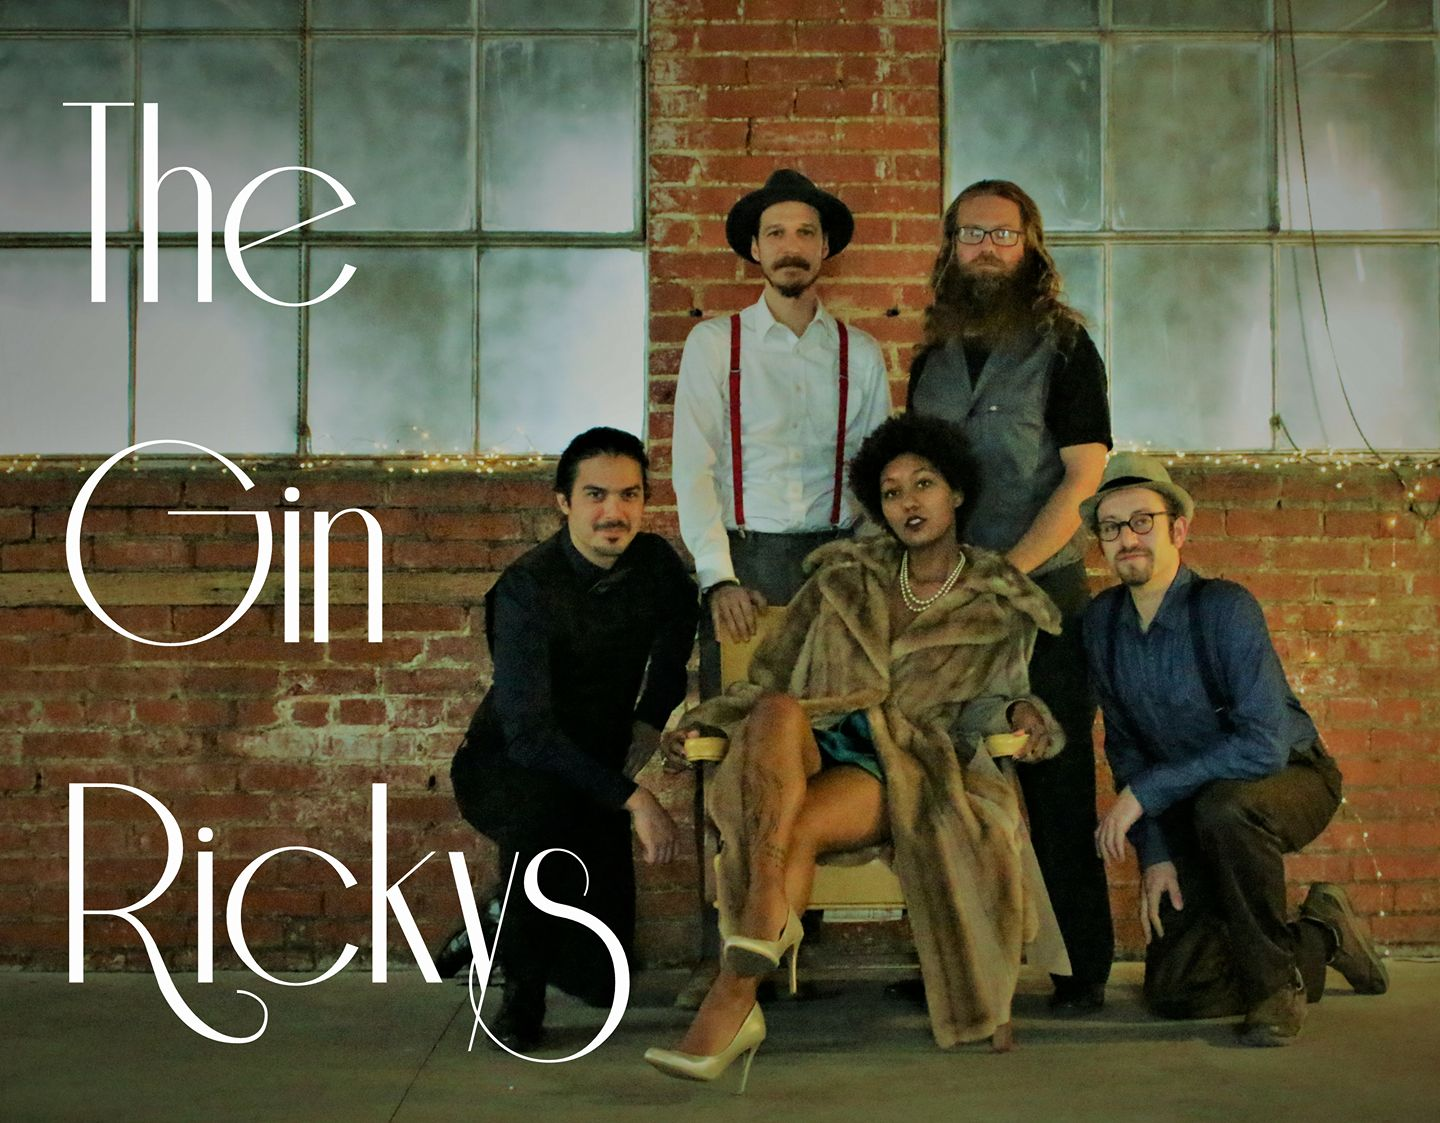 THE GIN RICKYS - Blues & Swing